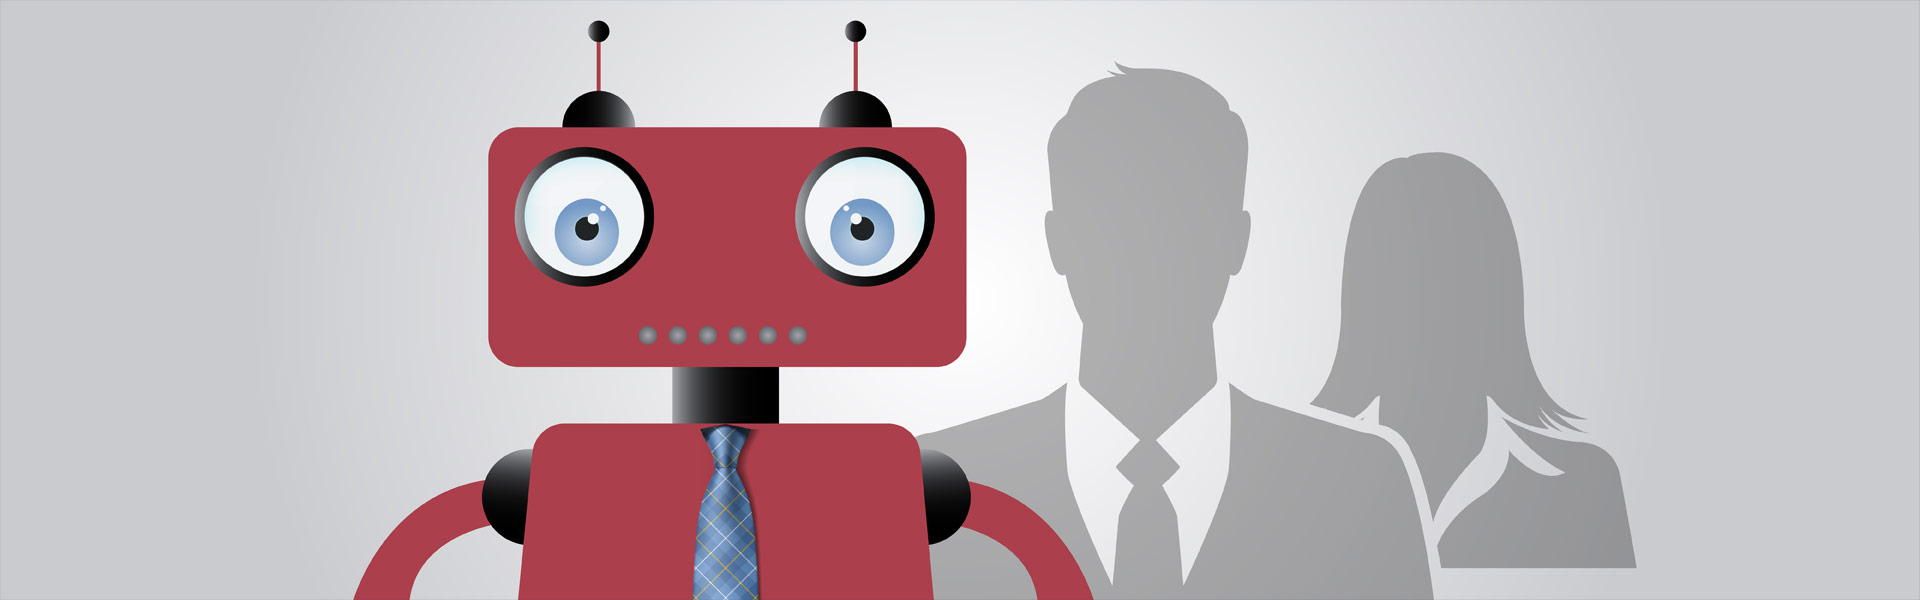 Robots are creating jobs, not removing them